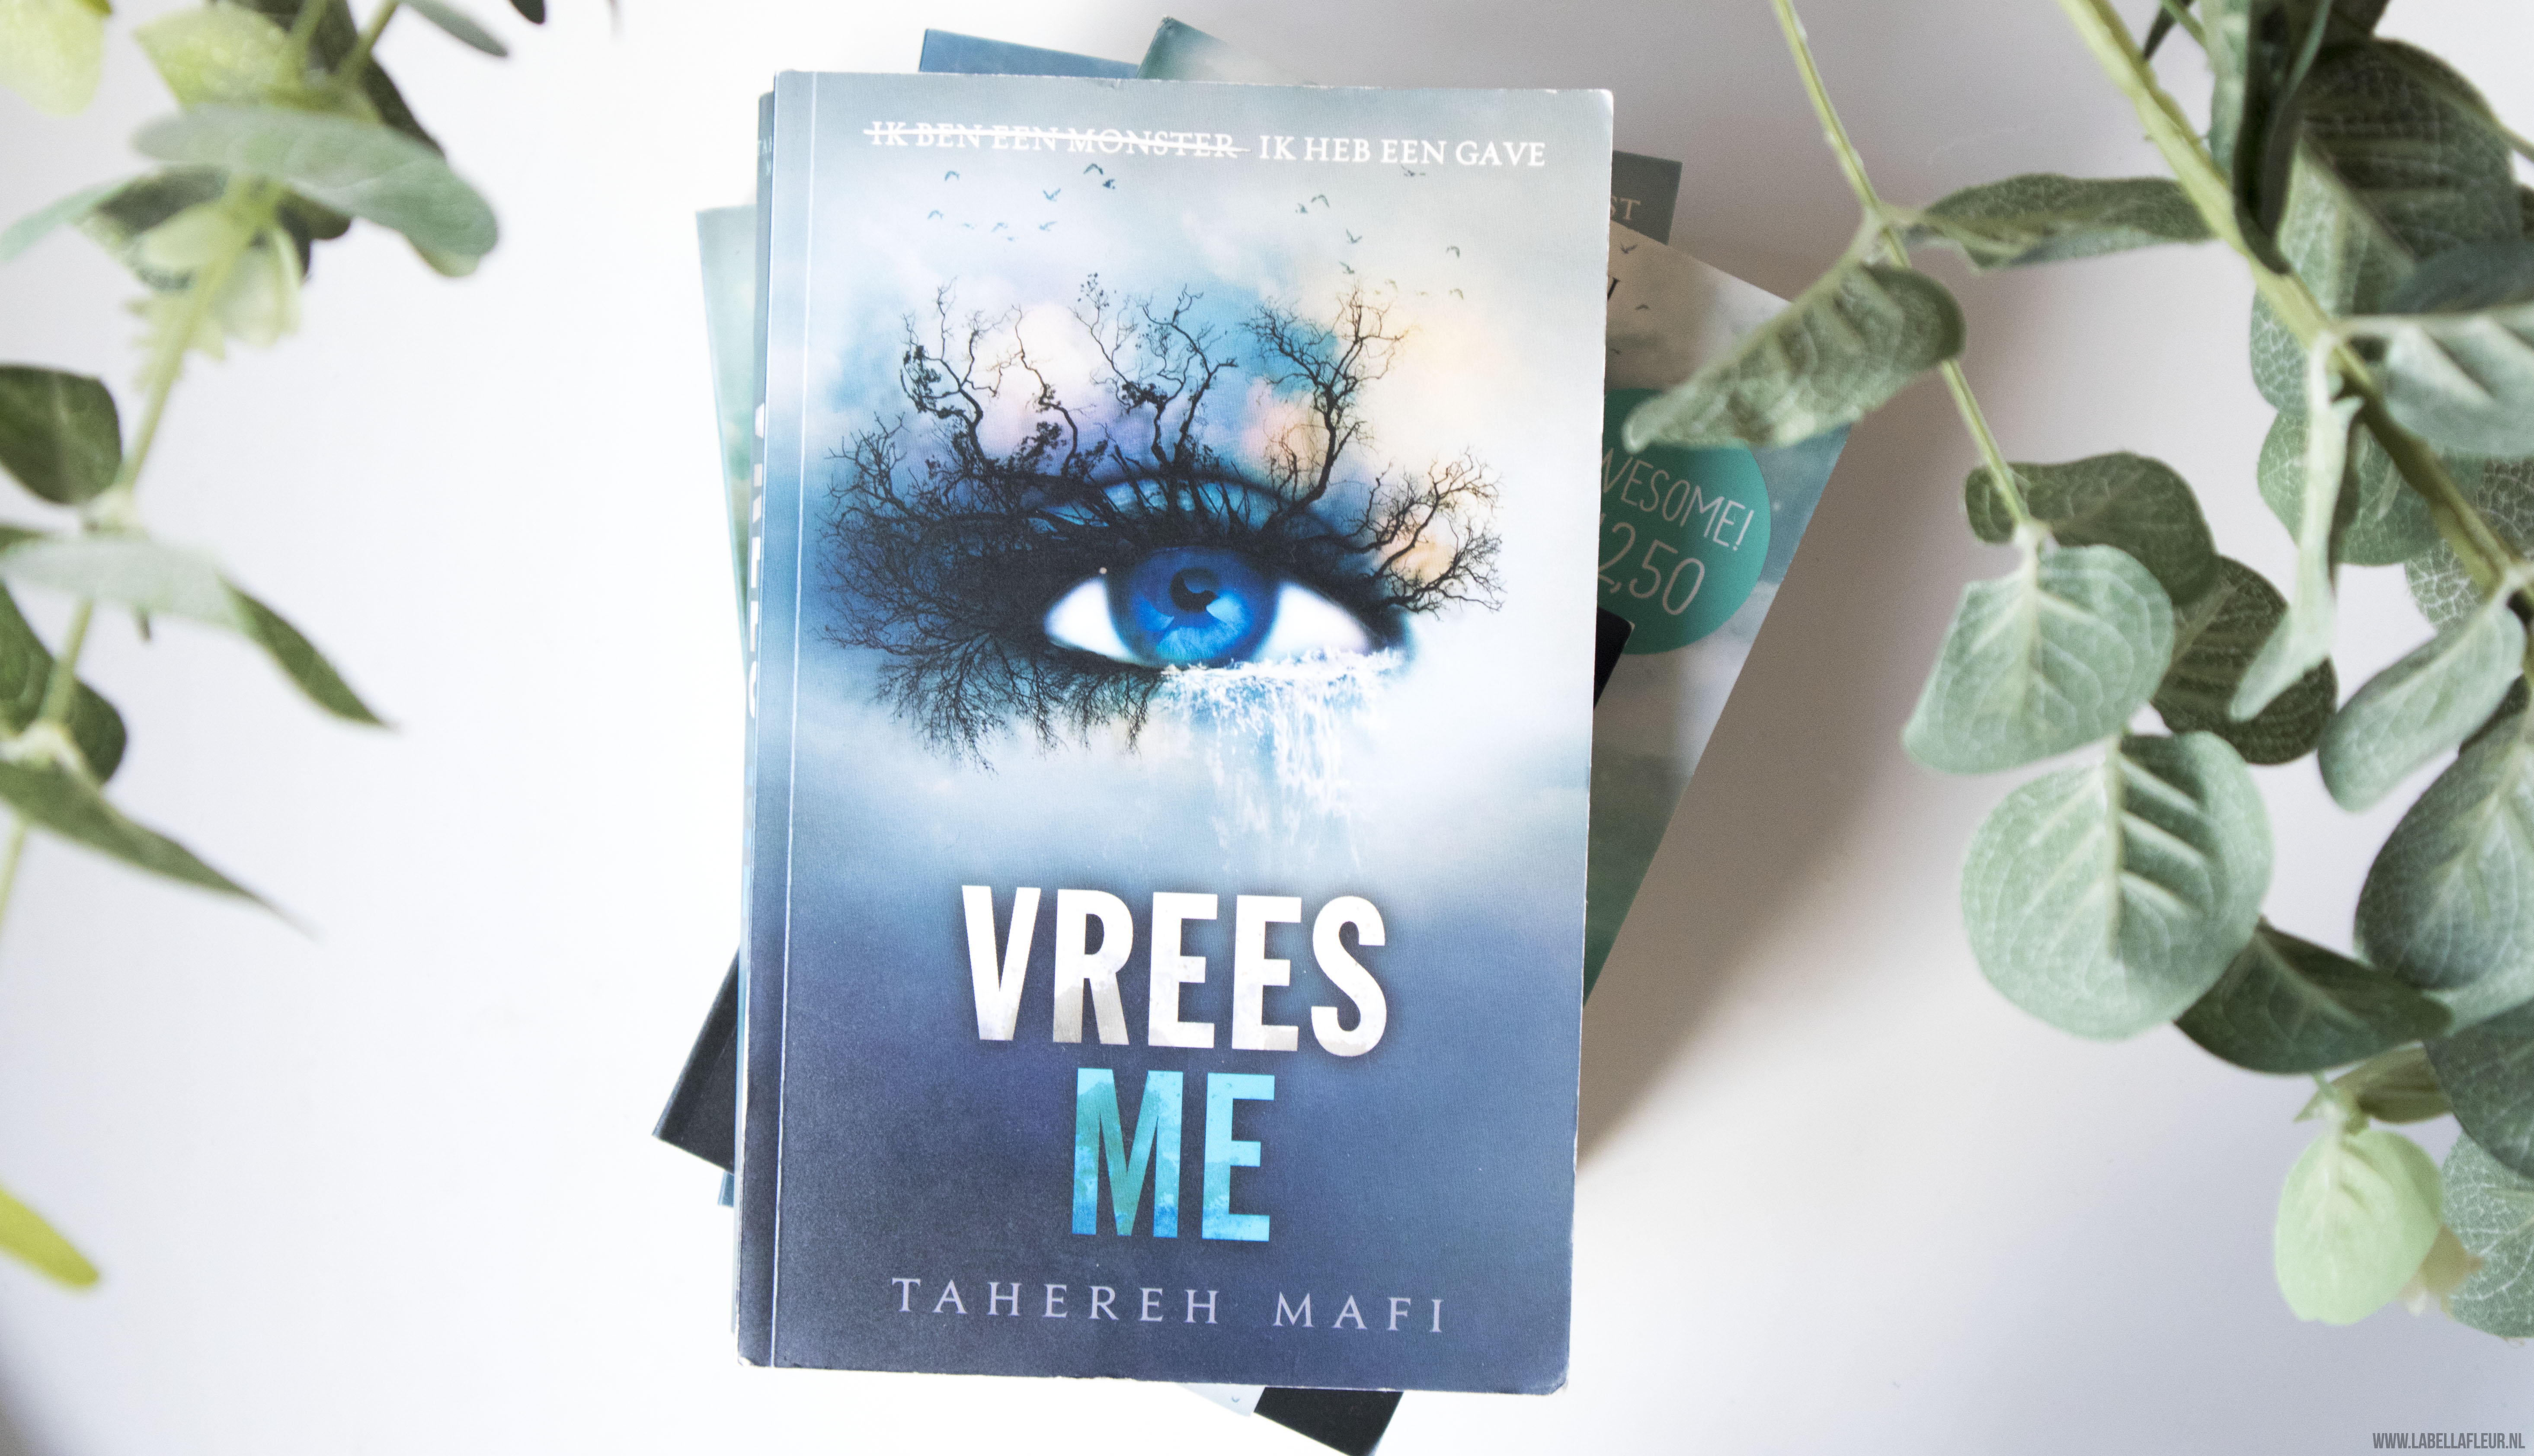 Vrees me, Tahereh Mafi, touching Juliette